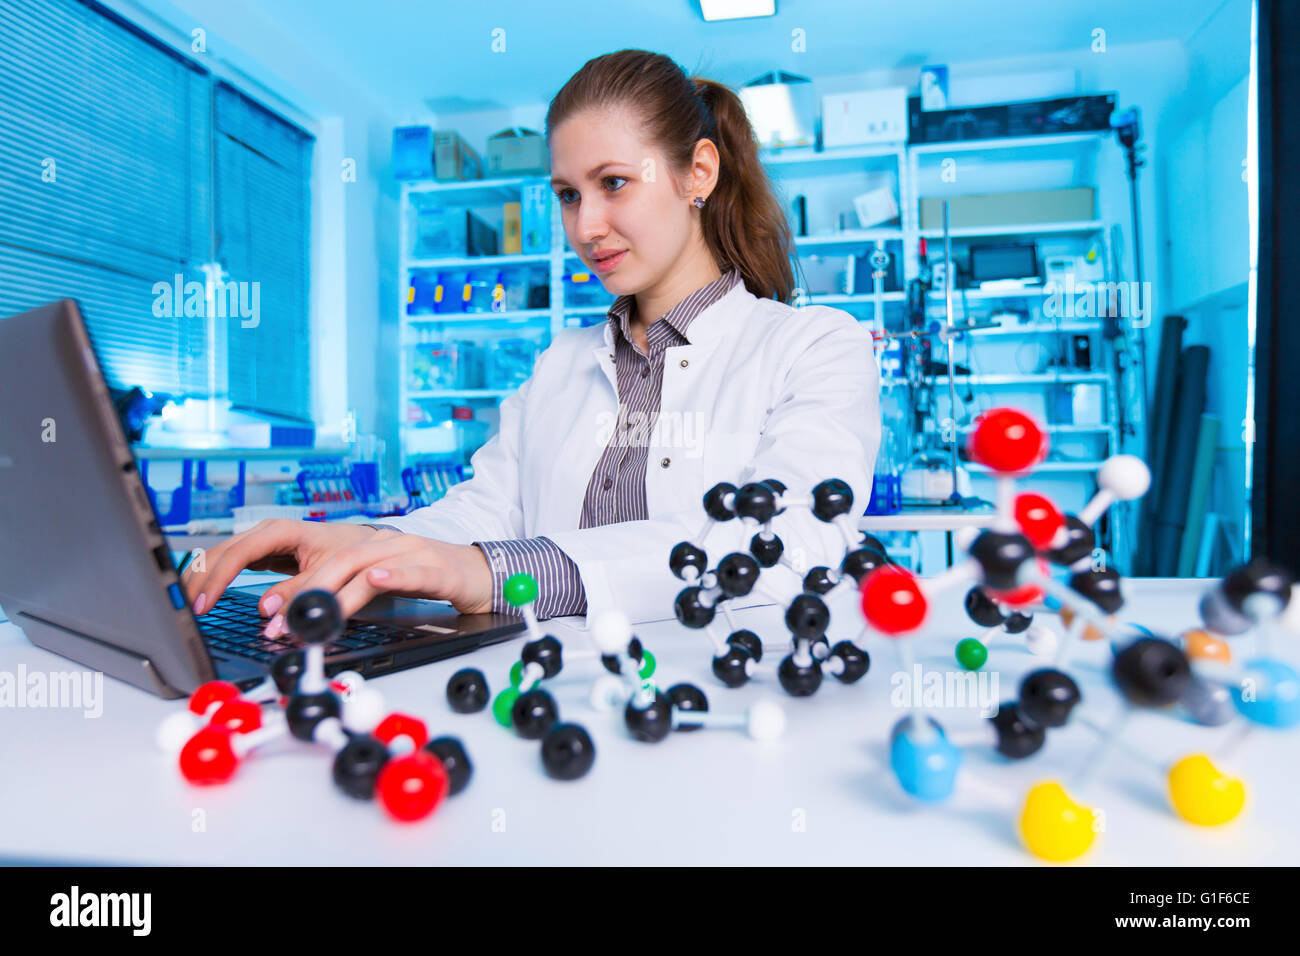 MODEL RELEASED. Female chemist using laptop in the laboratory. - Stock Image